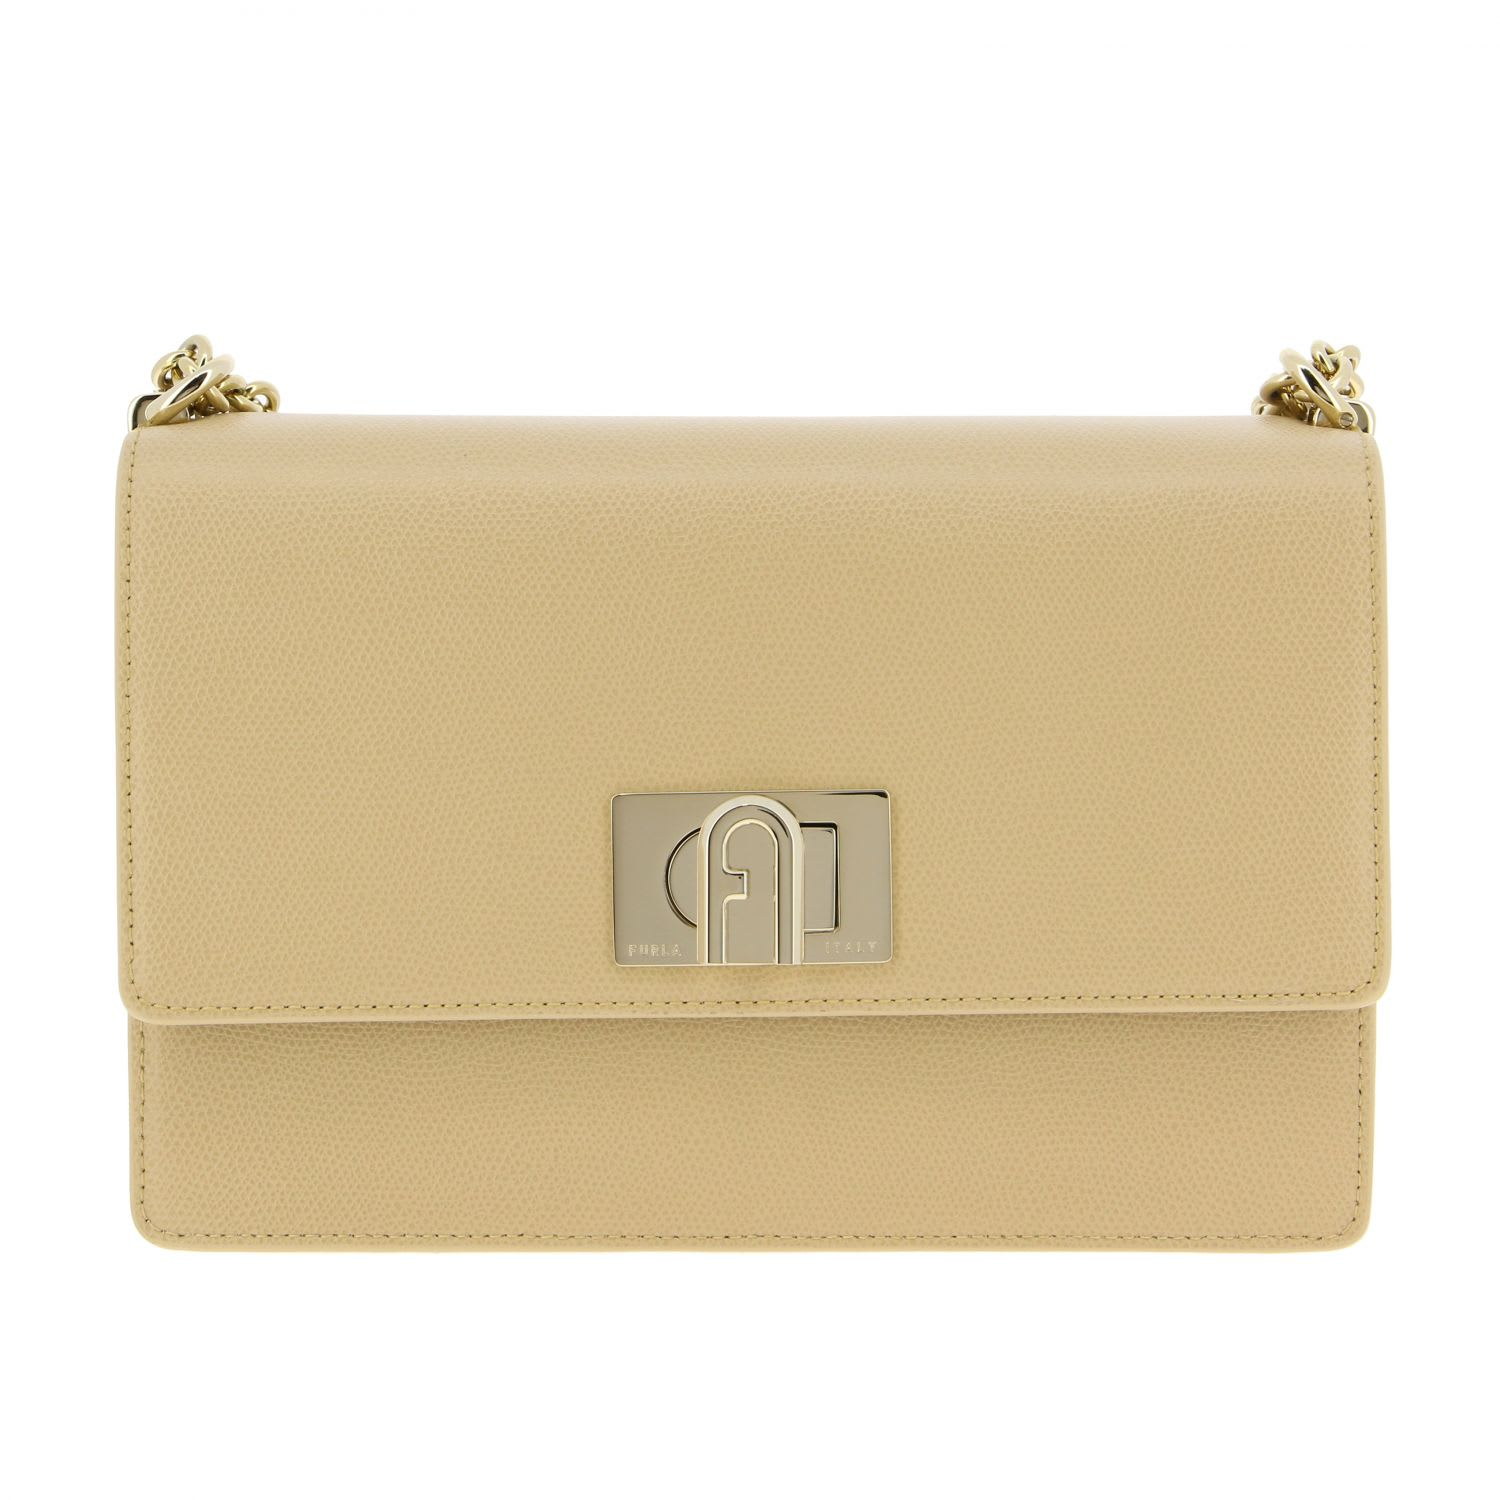 Furla Leather Bag In Sand